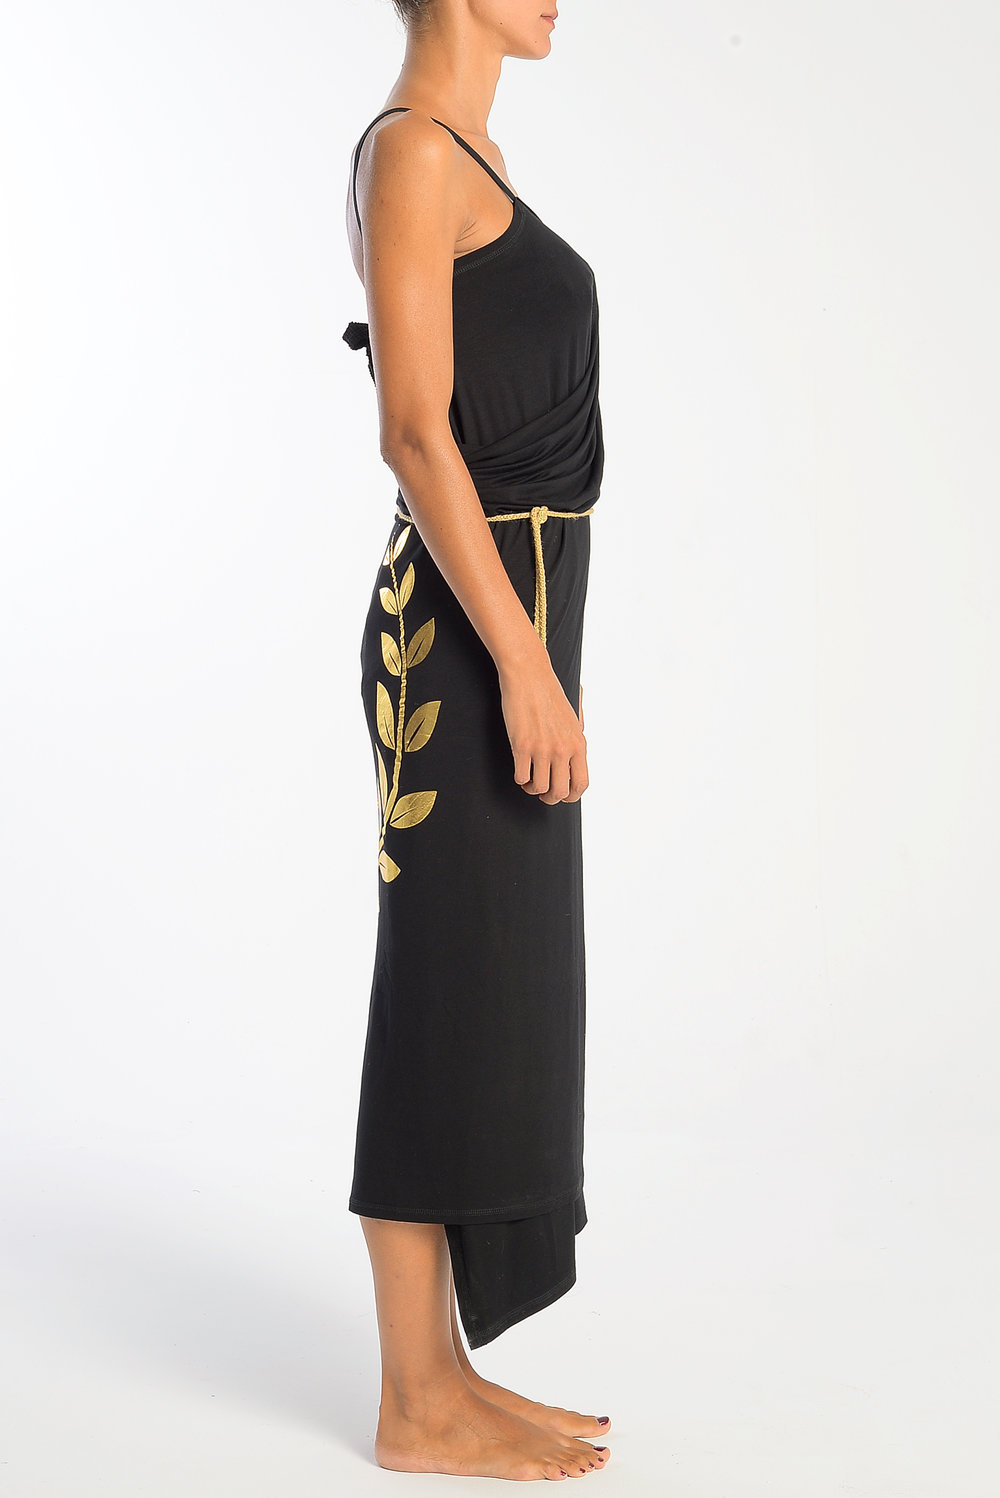 wrap-pareo-dress-golden-foil-olive-wearth-front-side-right.jpg